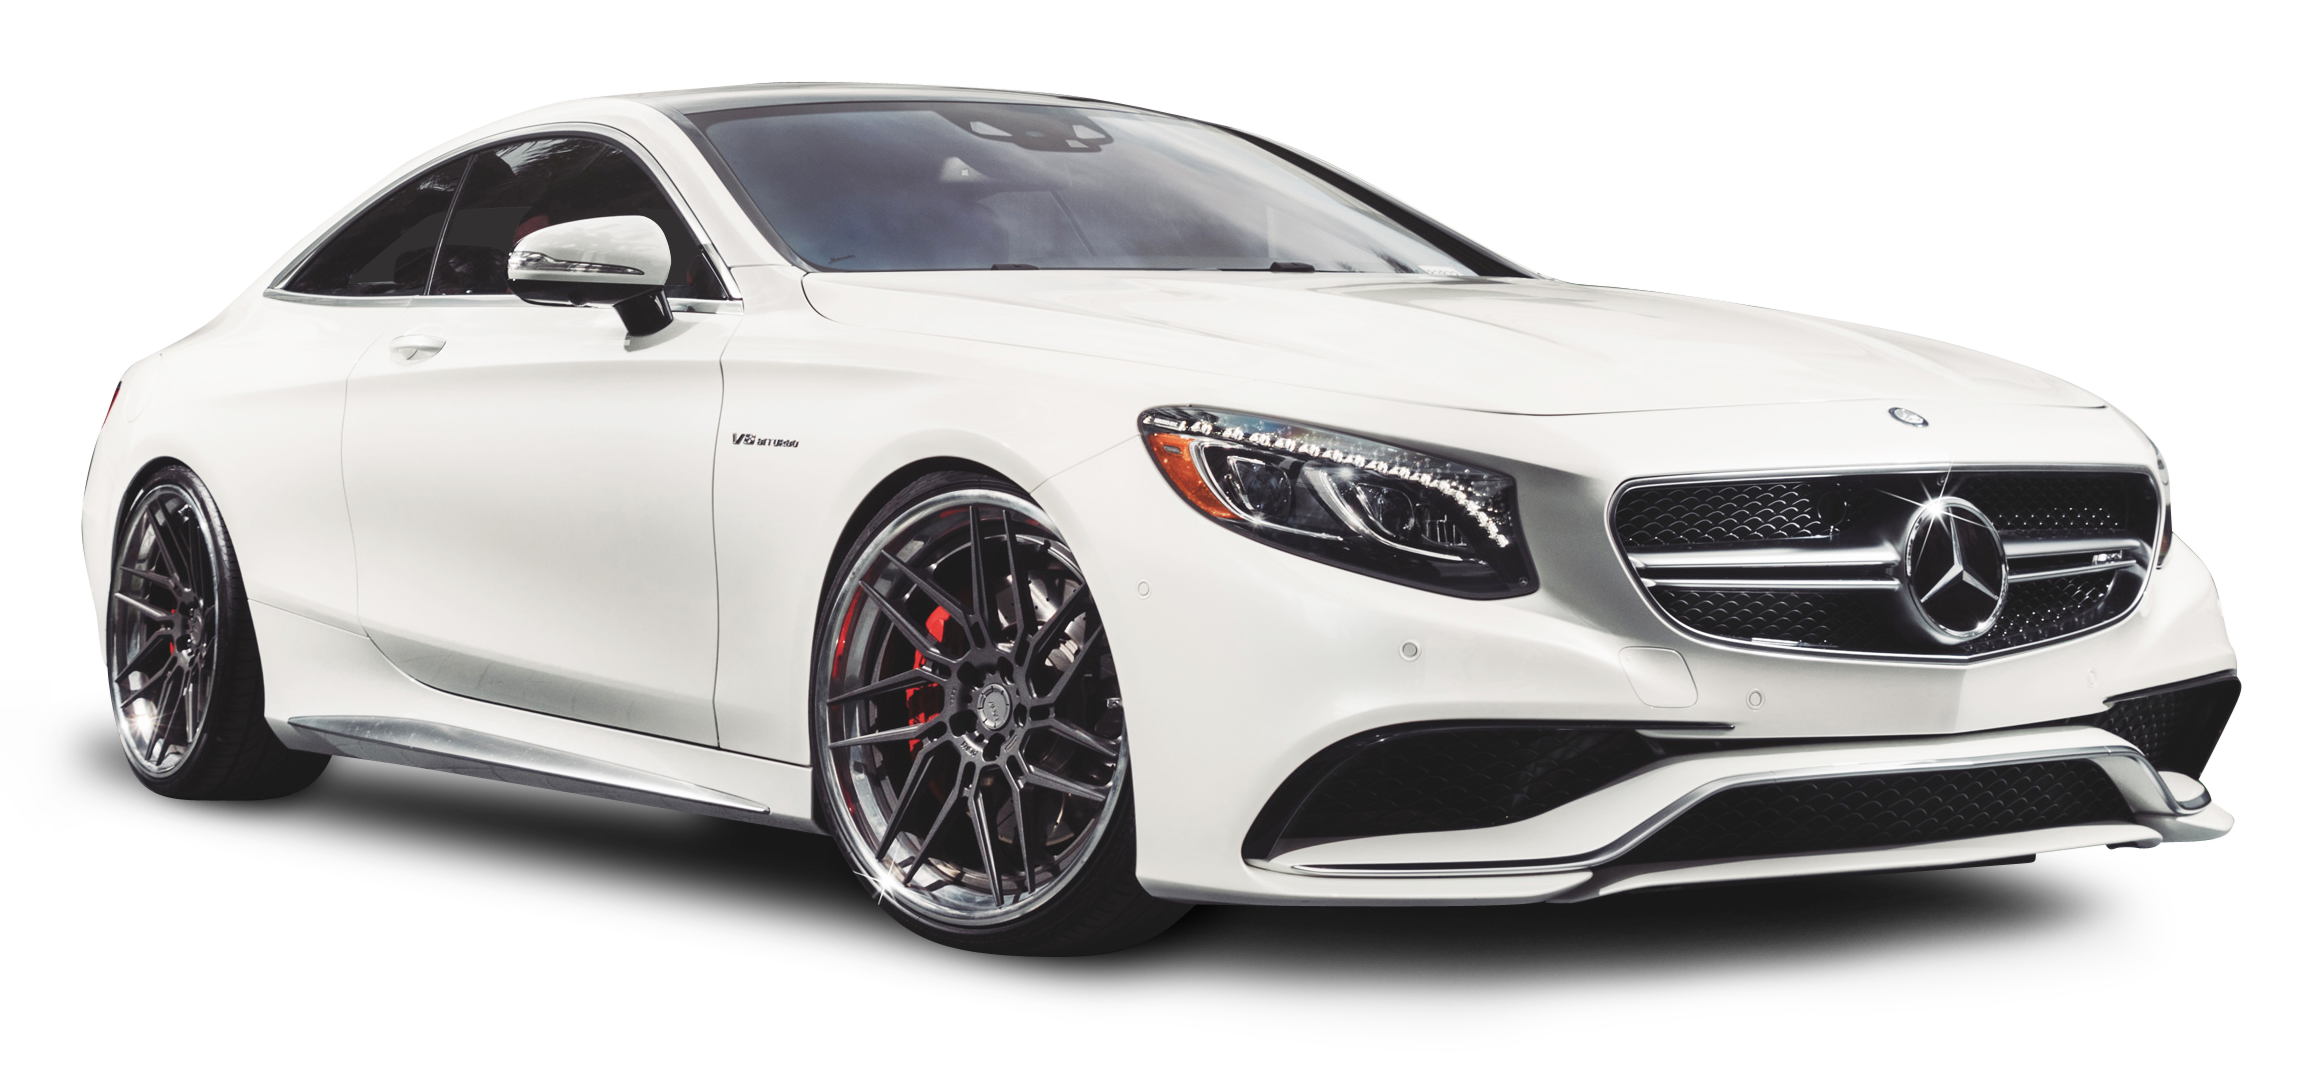 mercedes benz amg white car png image pngpix #26150